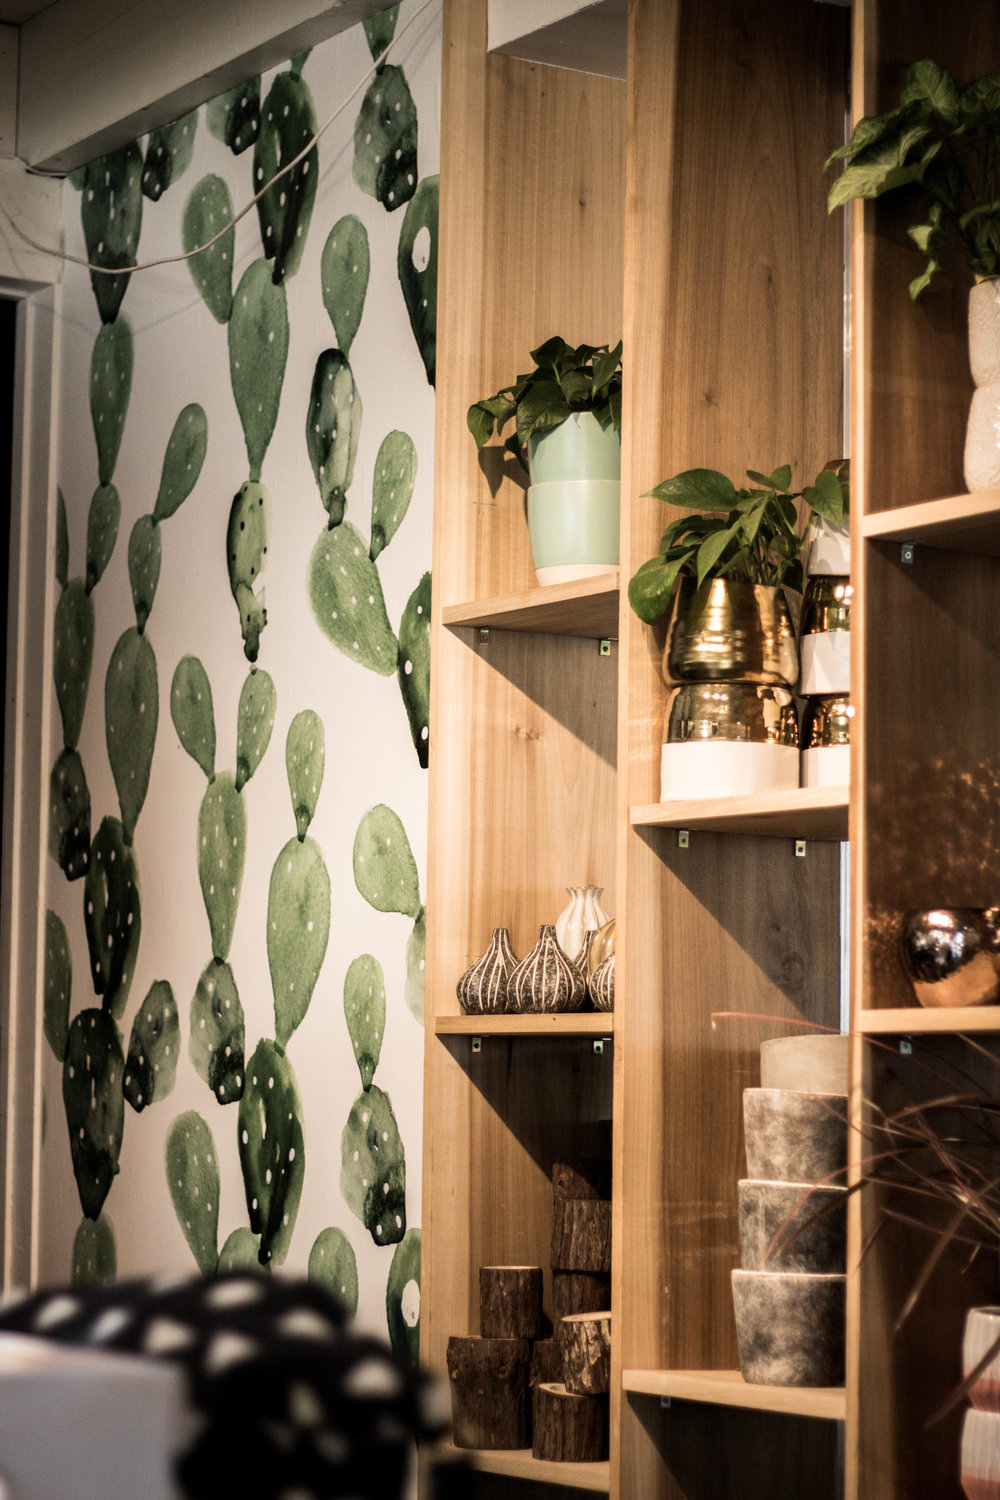 mural of cacti and succulents with shelves for planters